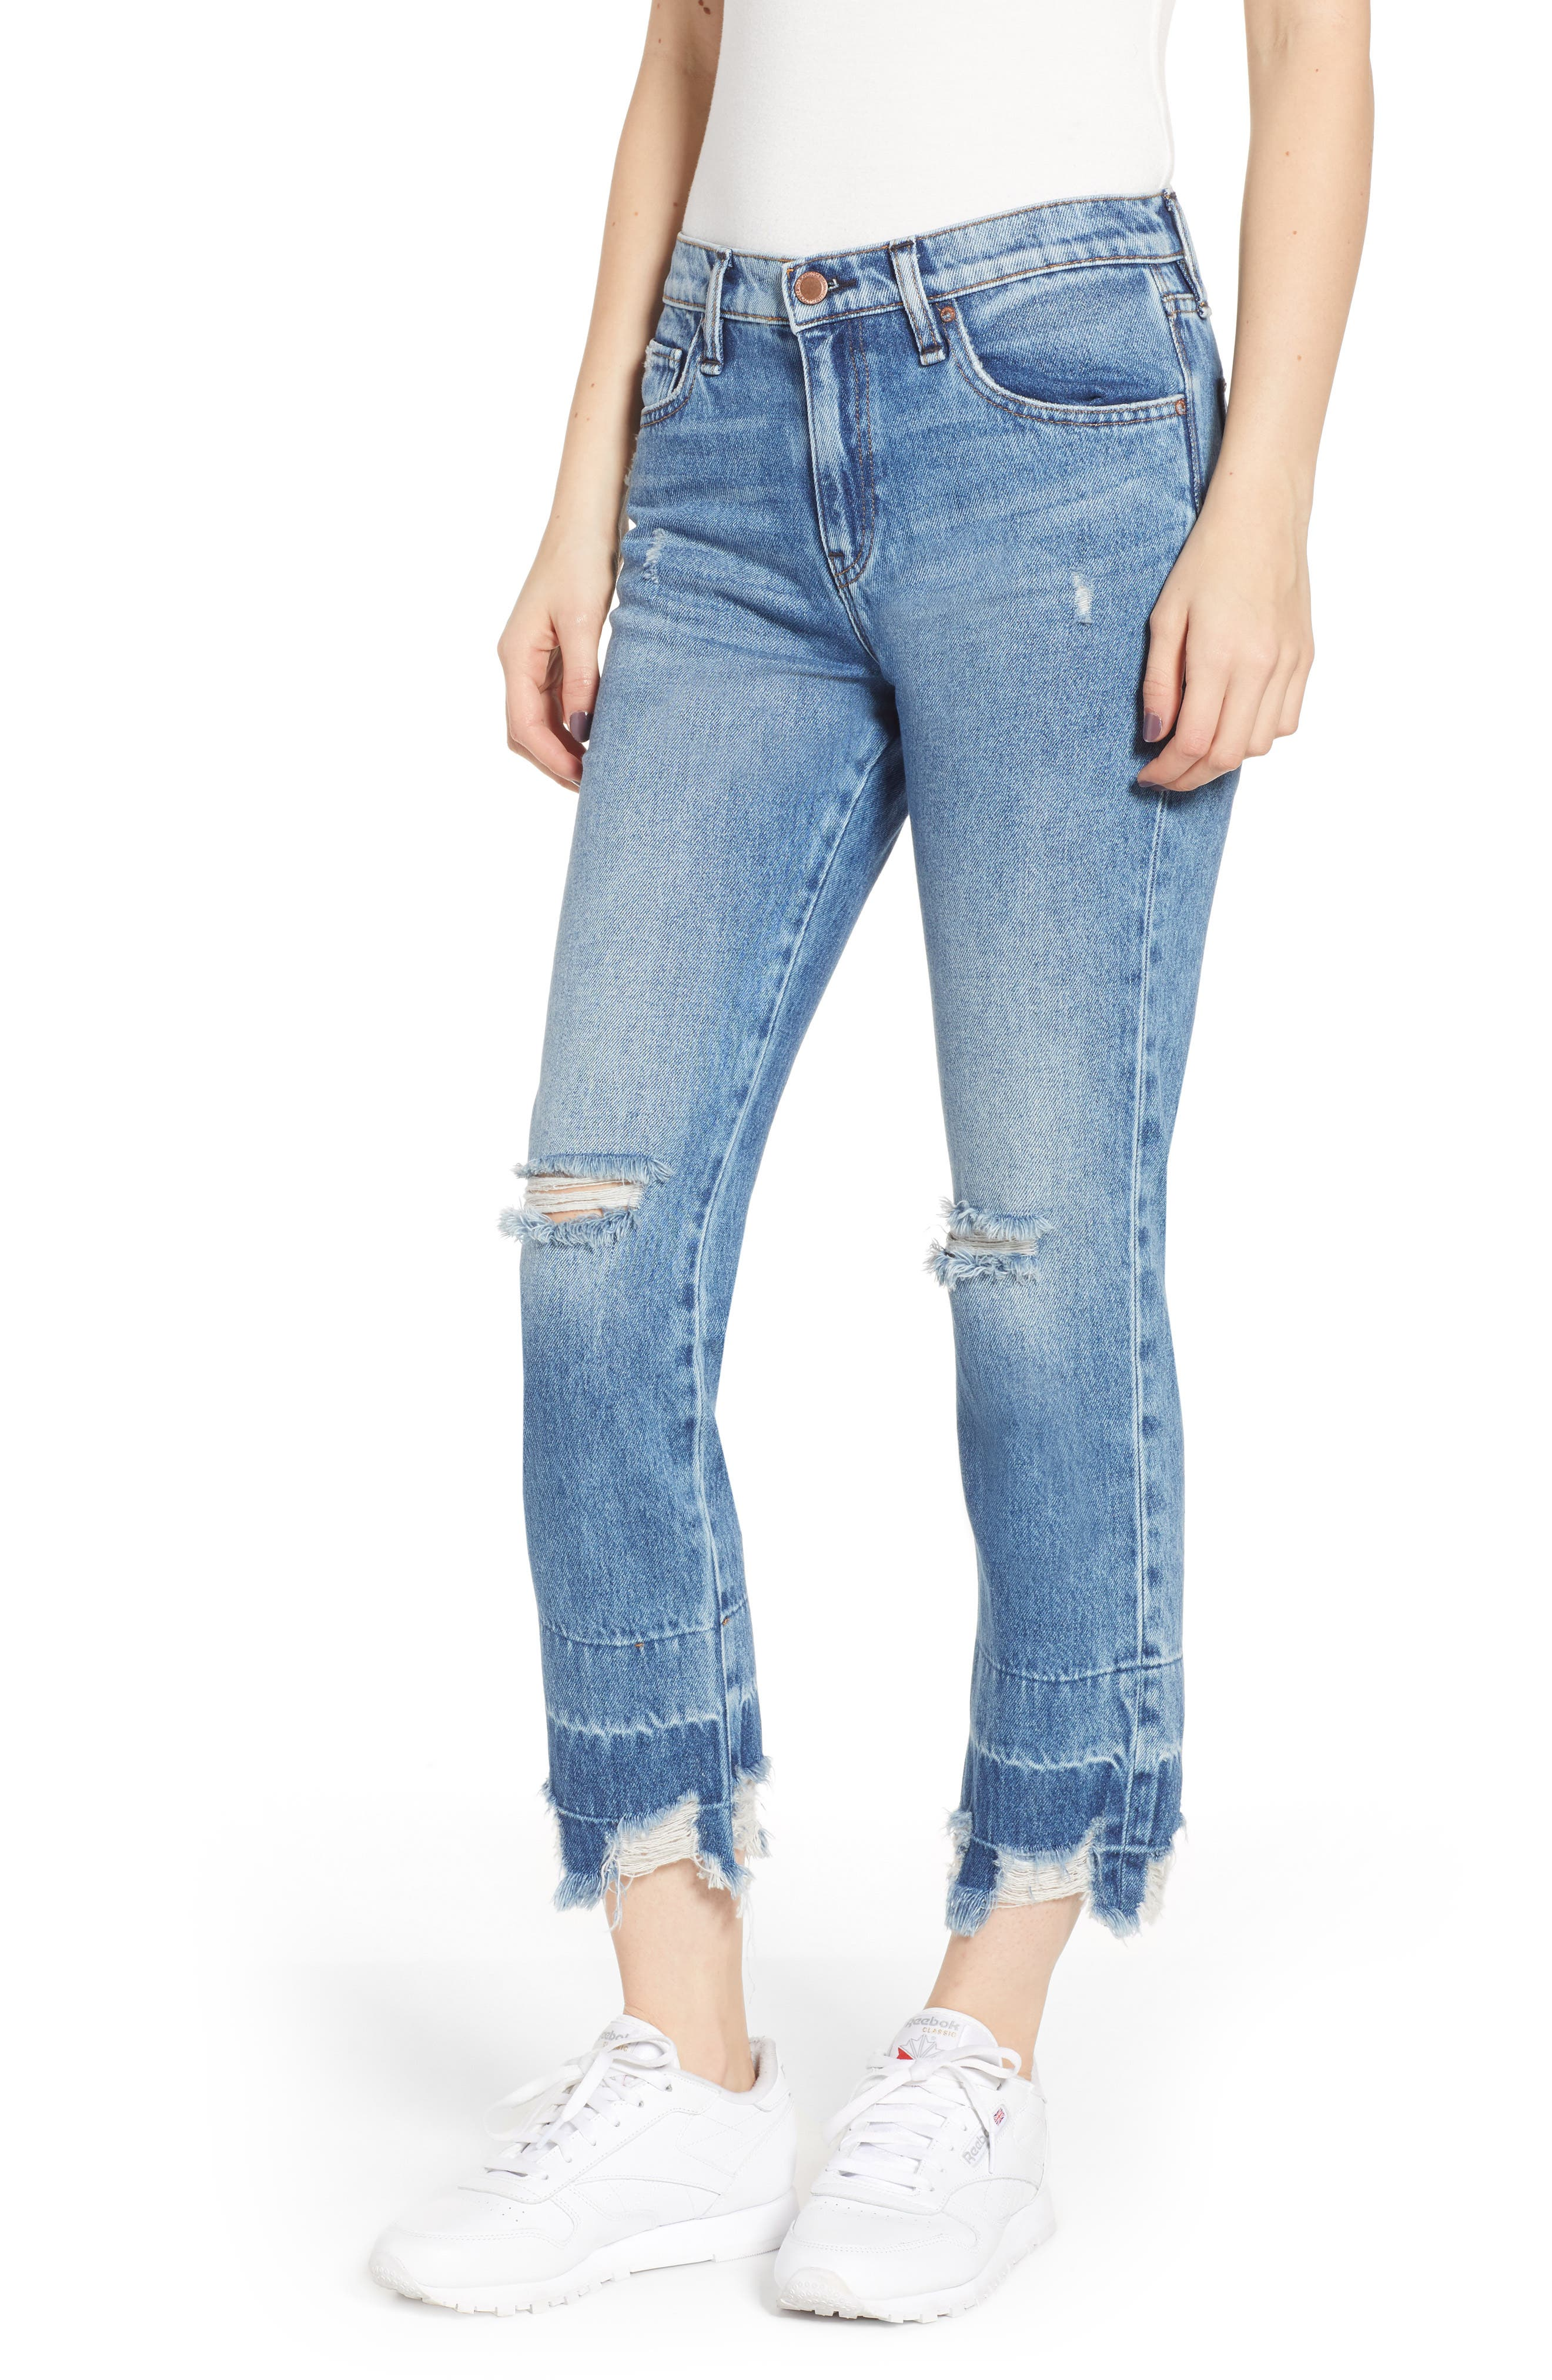 HUDSON JEANS Jessi Ripped Boyfriend Jeans, Main, color, OVERSHADOW